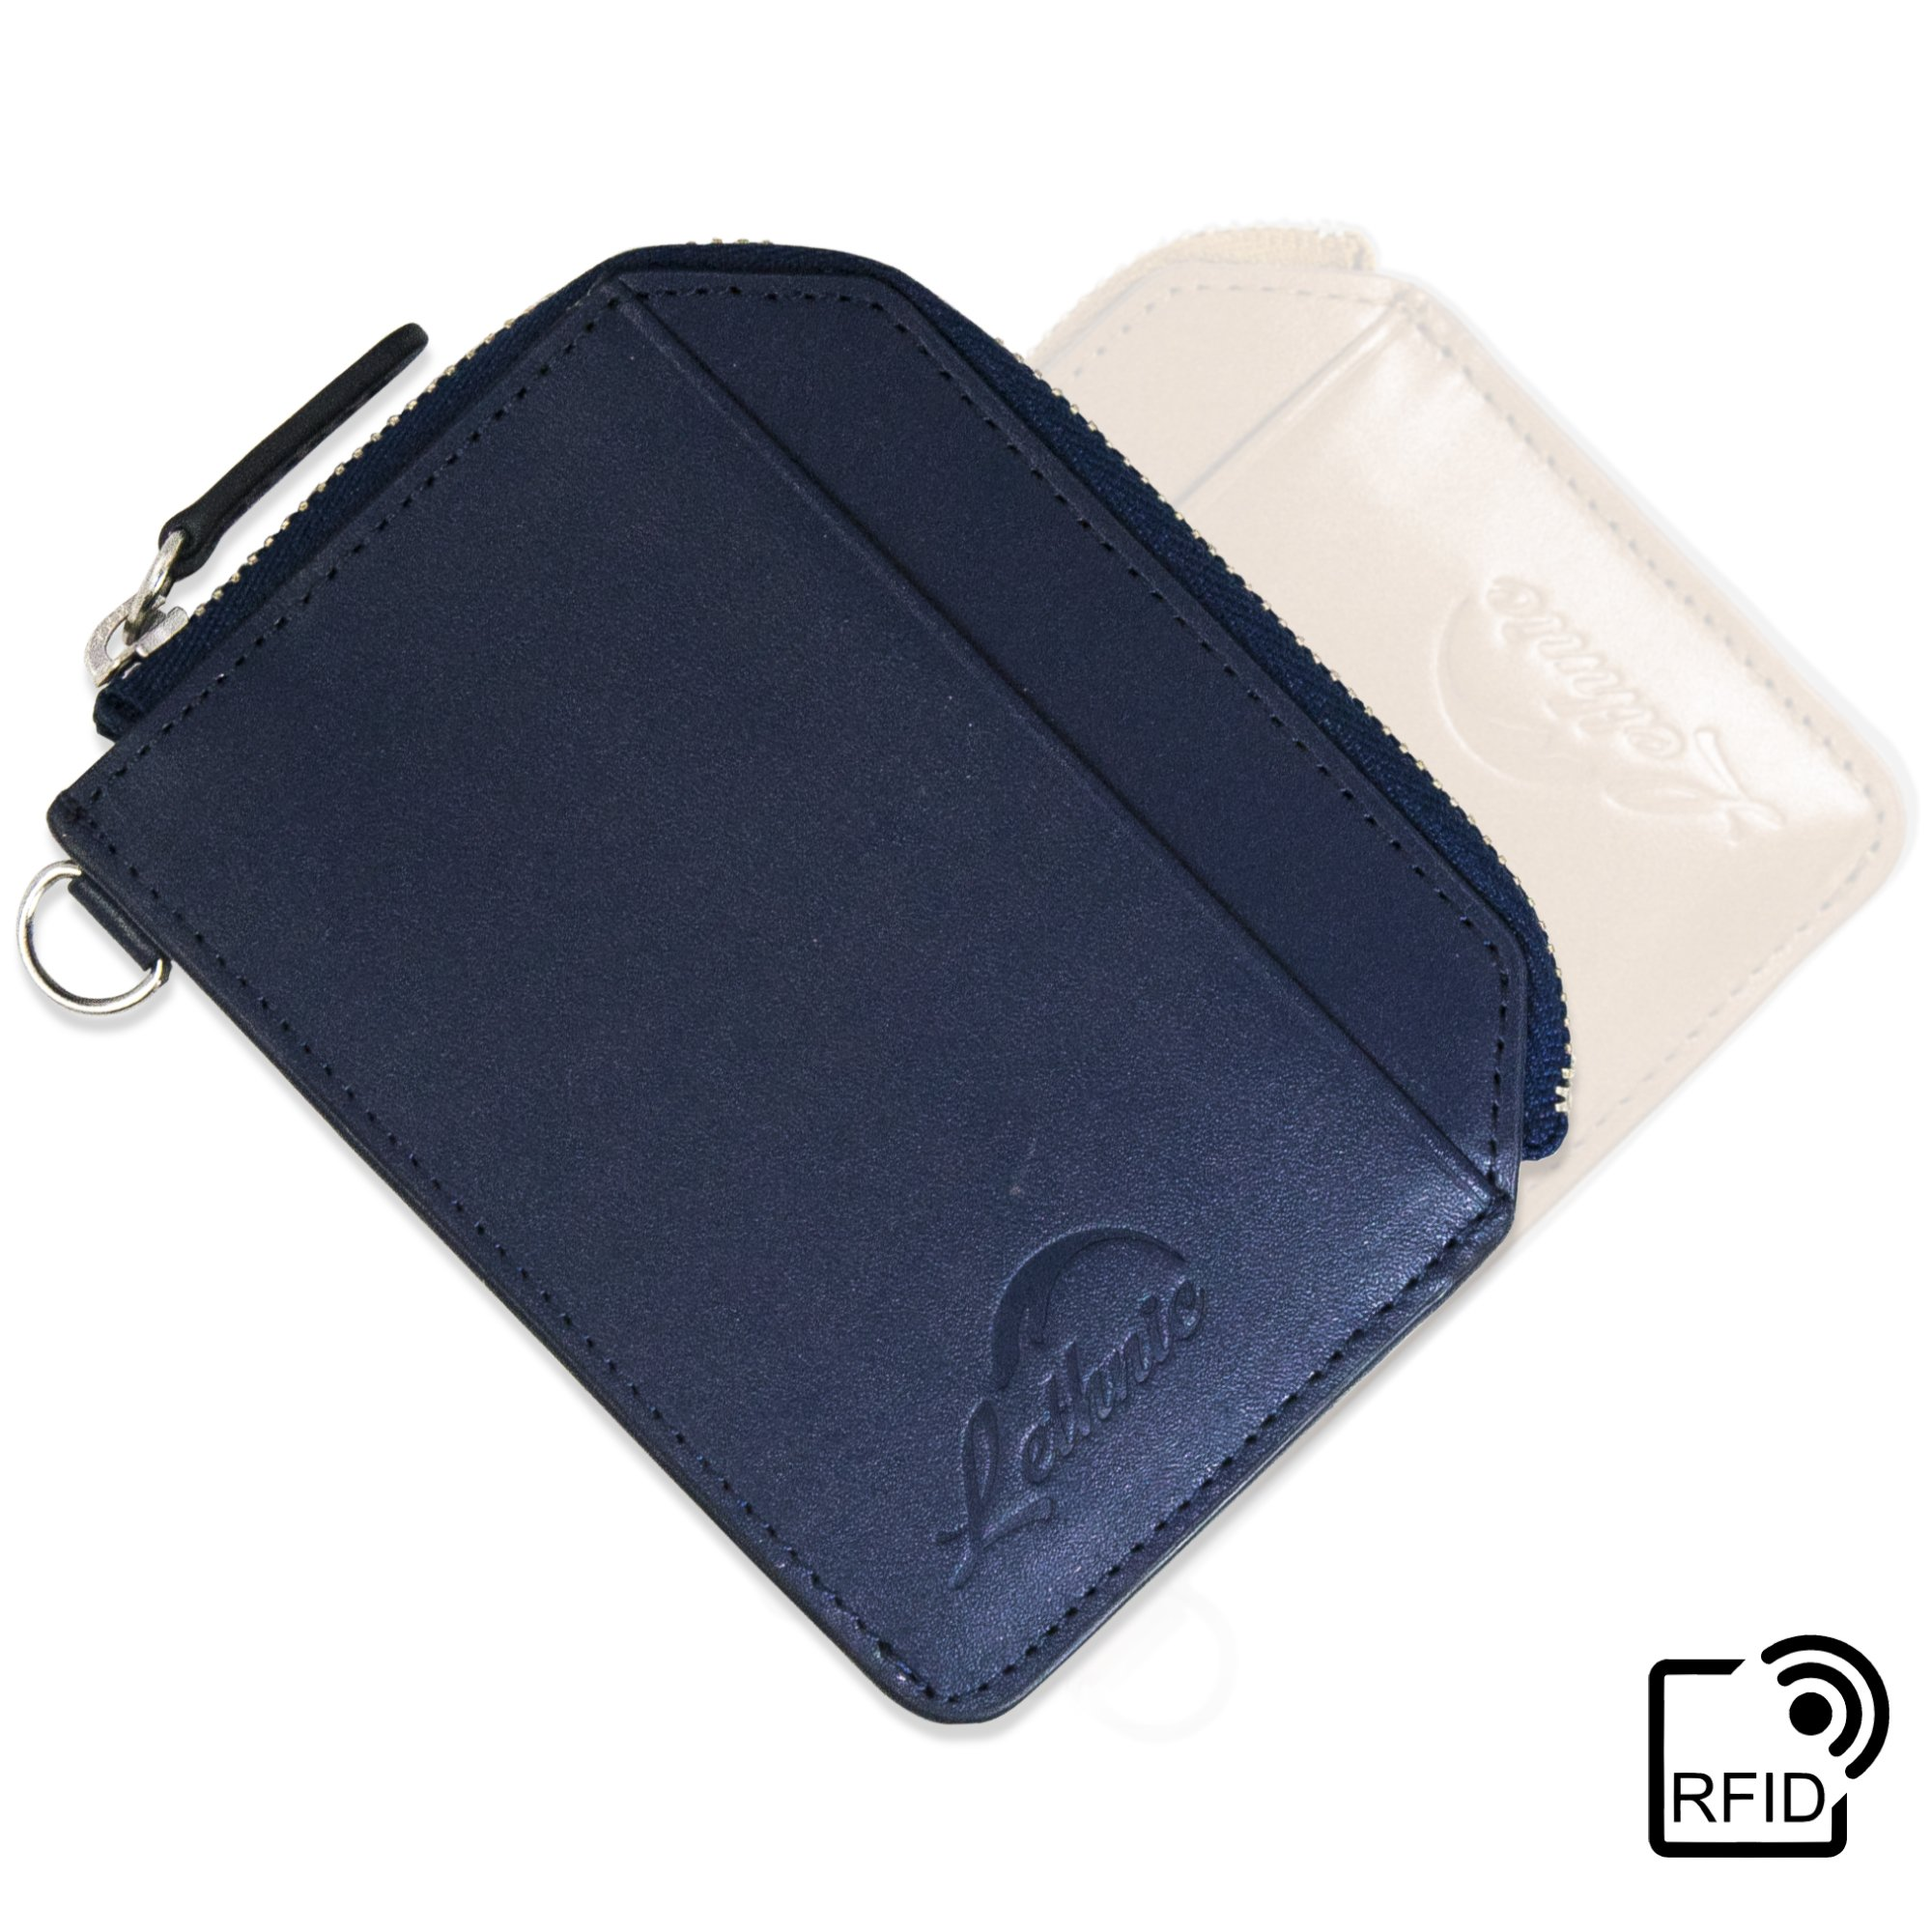 Lethnic Zip Around Wallet, Genuine Leather Metal Zipper Travel With Front Pocket, ID Window, RFID Blocking For Men/Women - Enclosed Gift Box (Navy Blue)